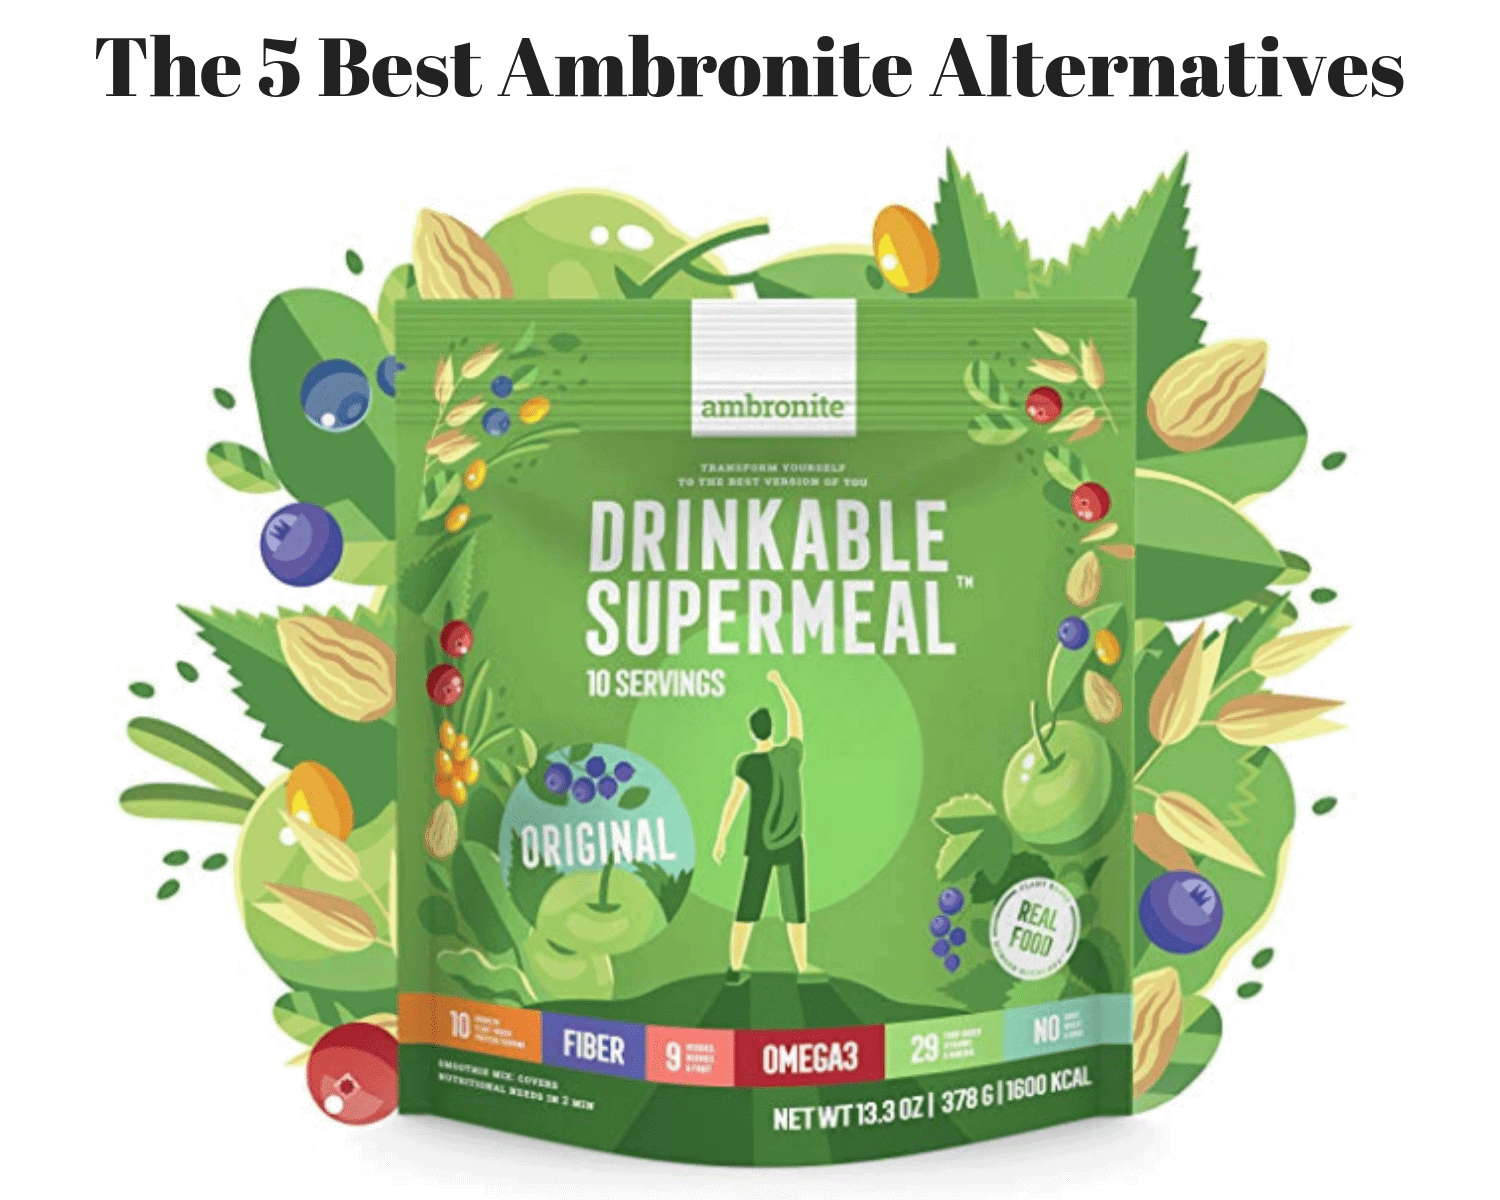 The 5 Best Ambronite Alternatives